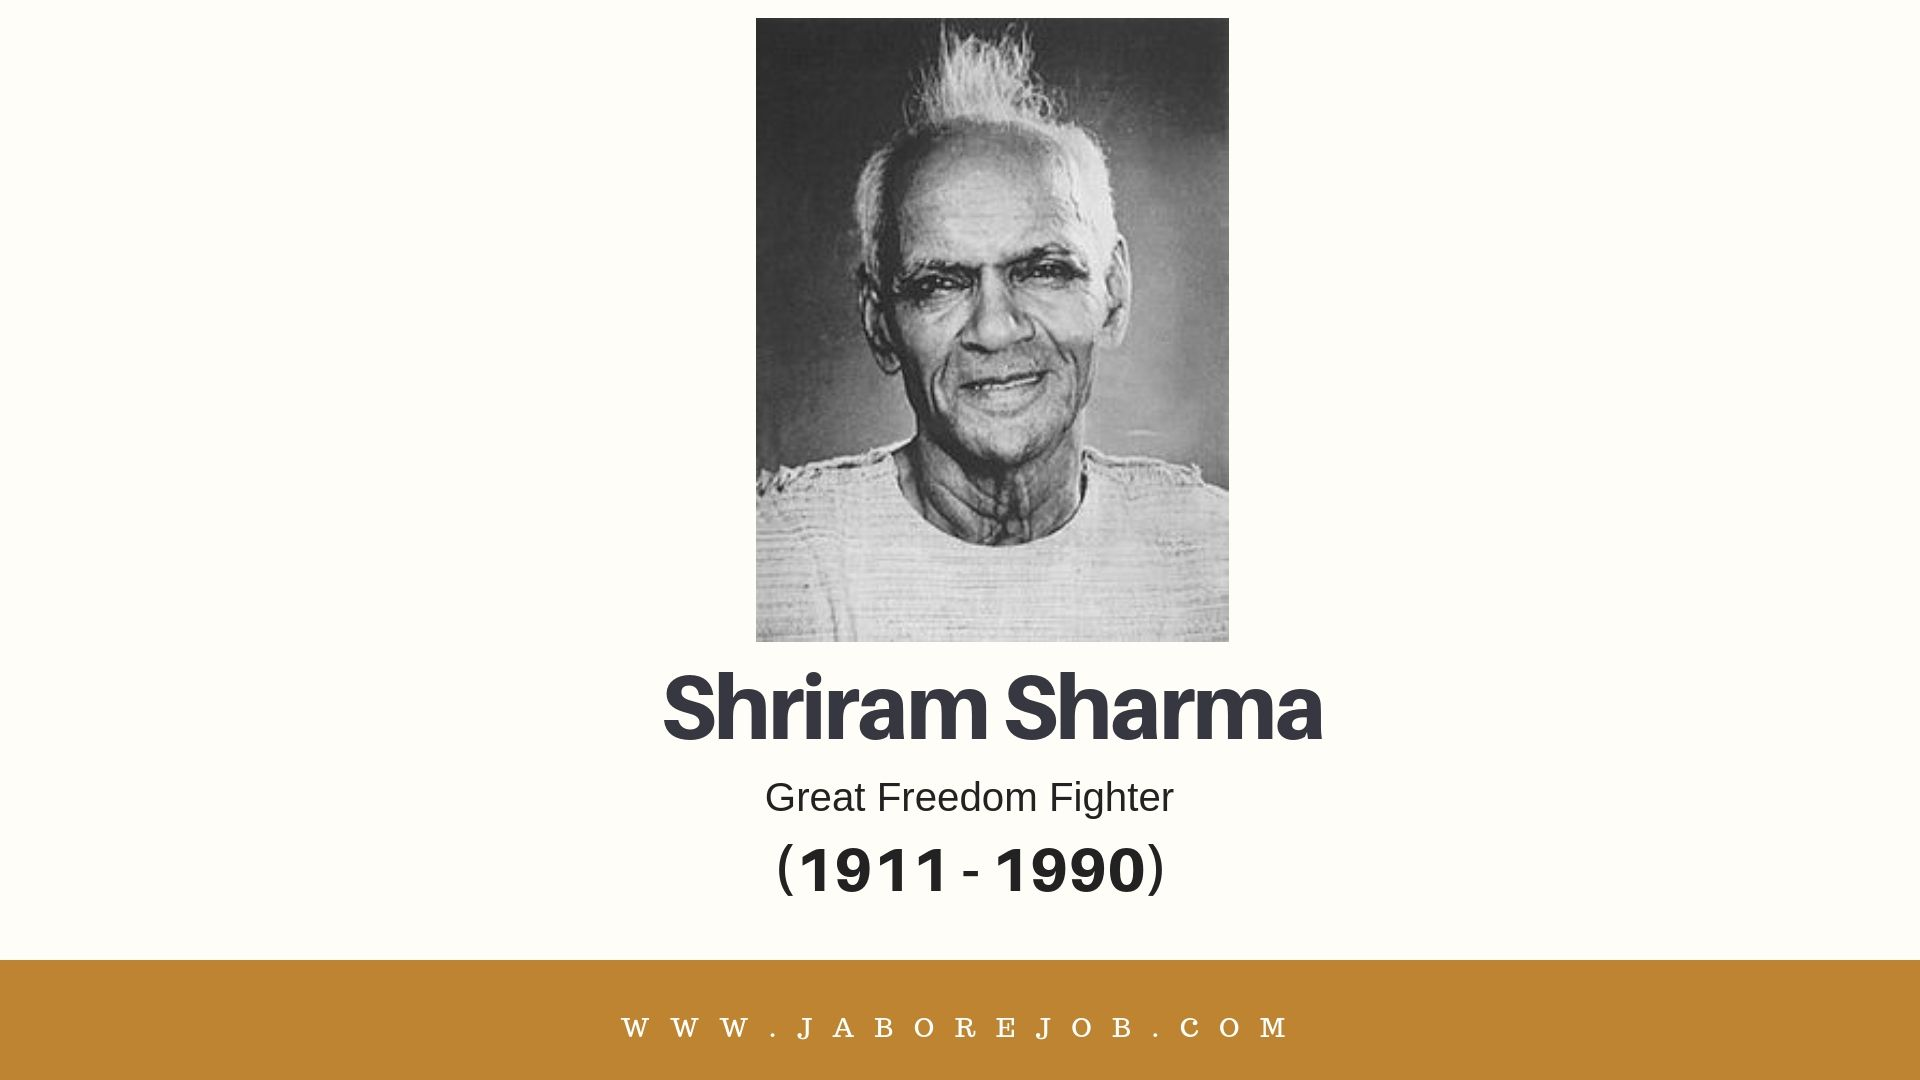 Shriram Sharma, Shriram Sharma freedom fighter, Shriram Sharma history, Shriram Sharma biography, Shriram Sharma information;